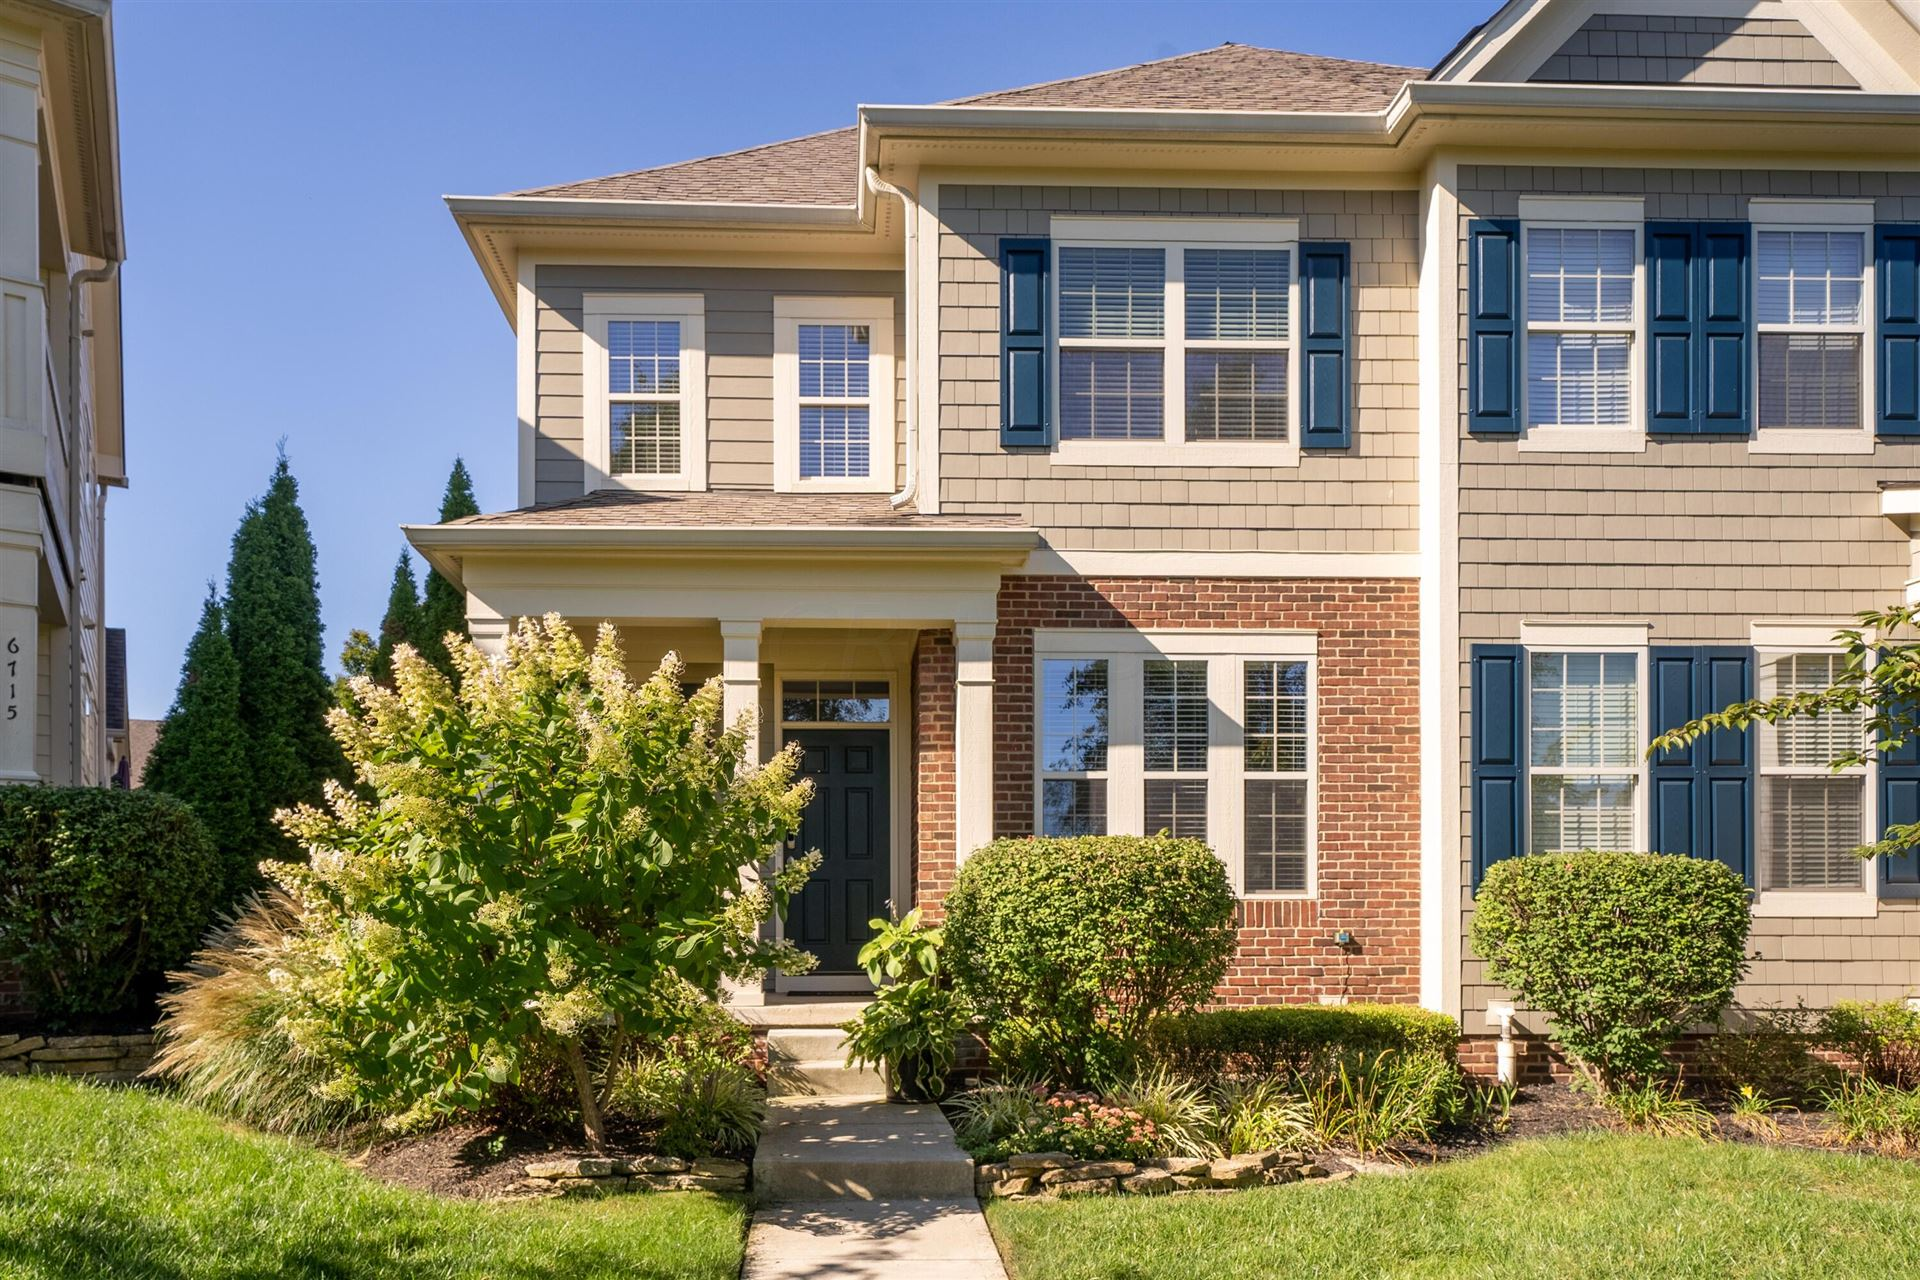 Photo of 6719 Cooperstone Drive #70, Dublin, OH 43017 (MLS # 221036090)